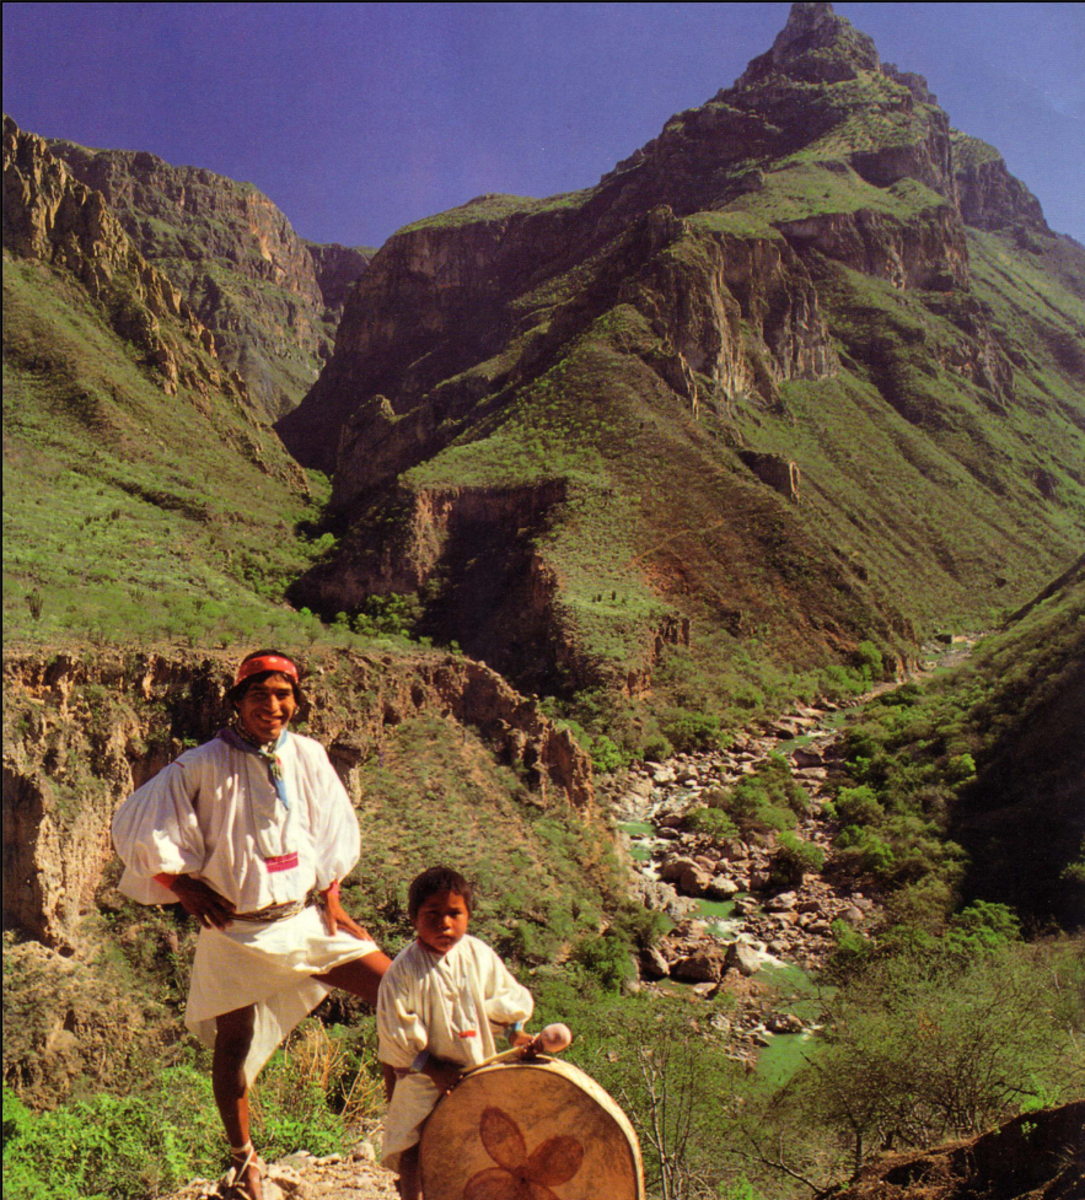 The Tarahumara people have made the Copper Canyon their home for centuries.